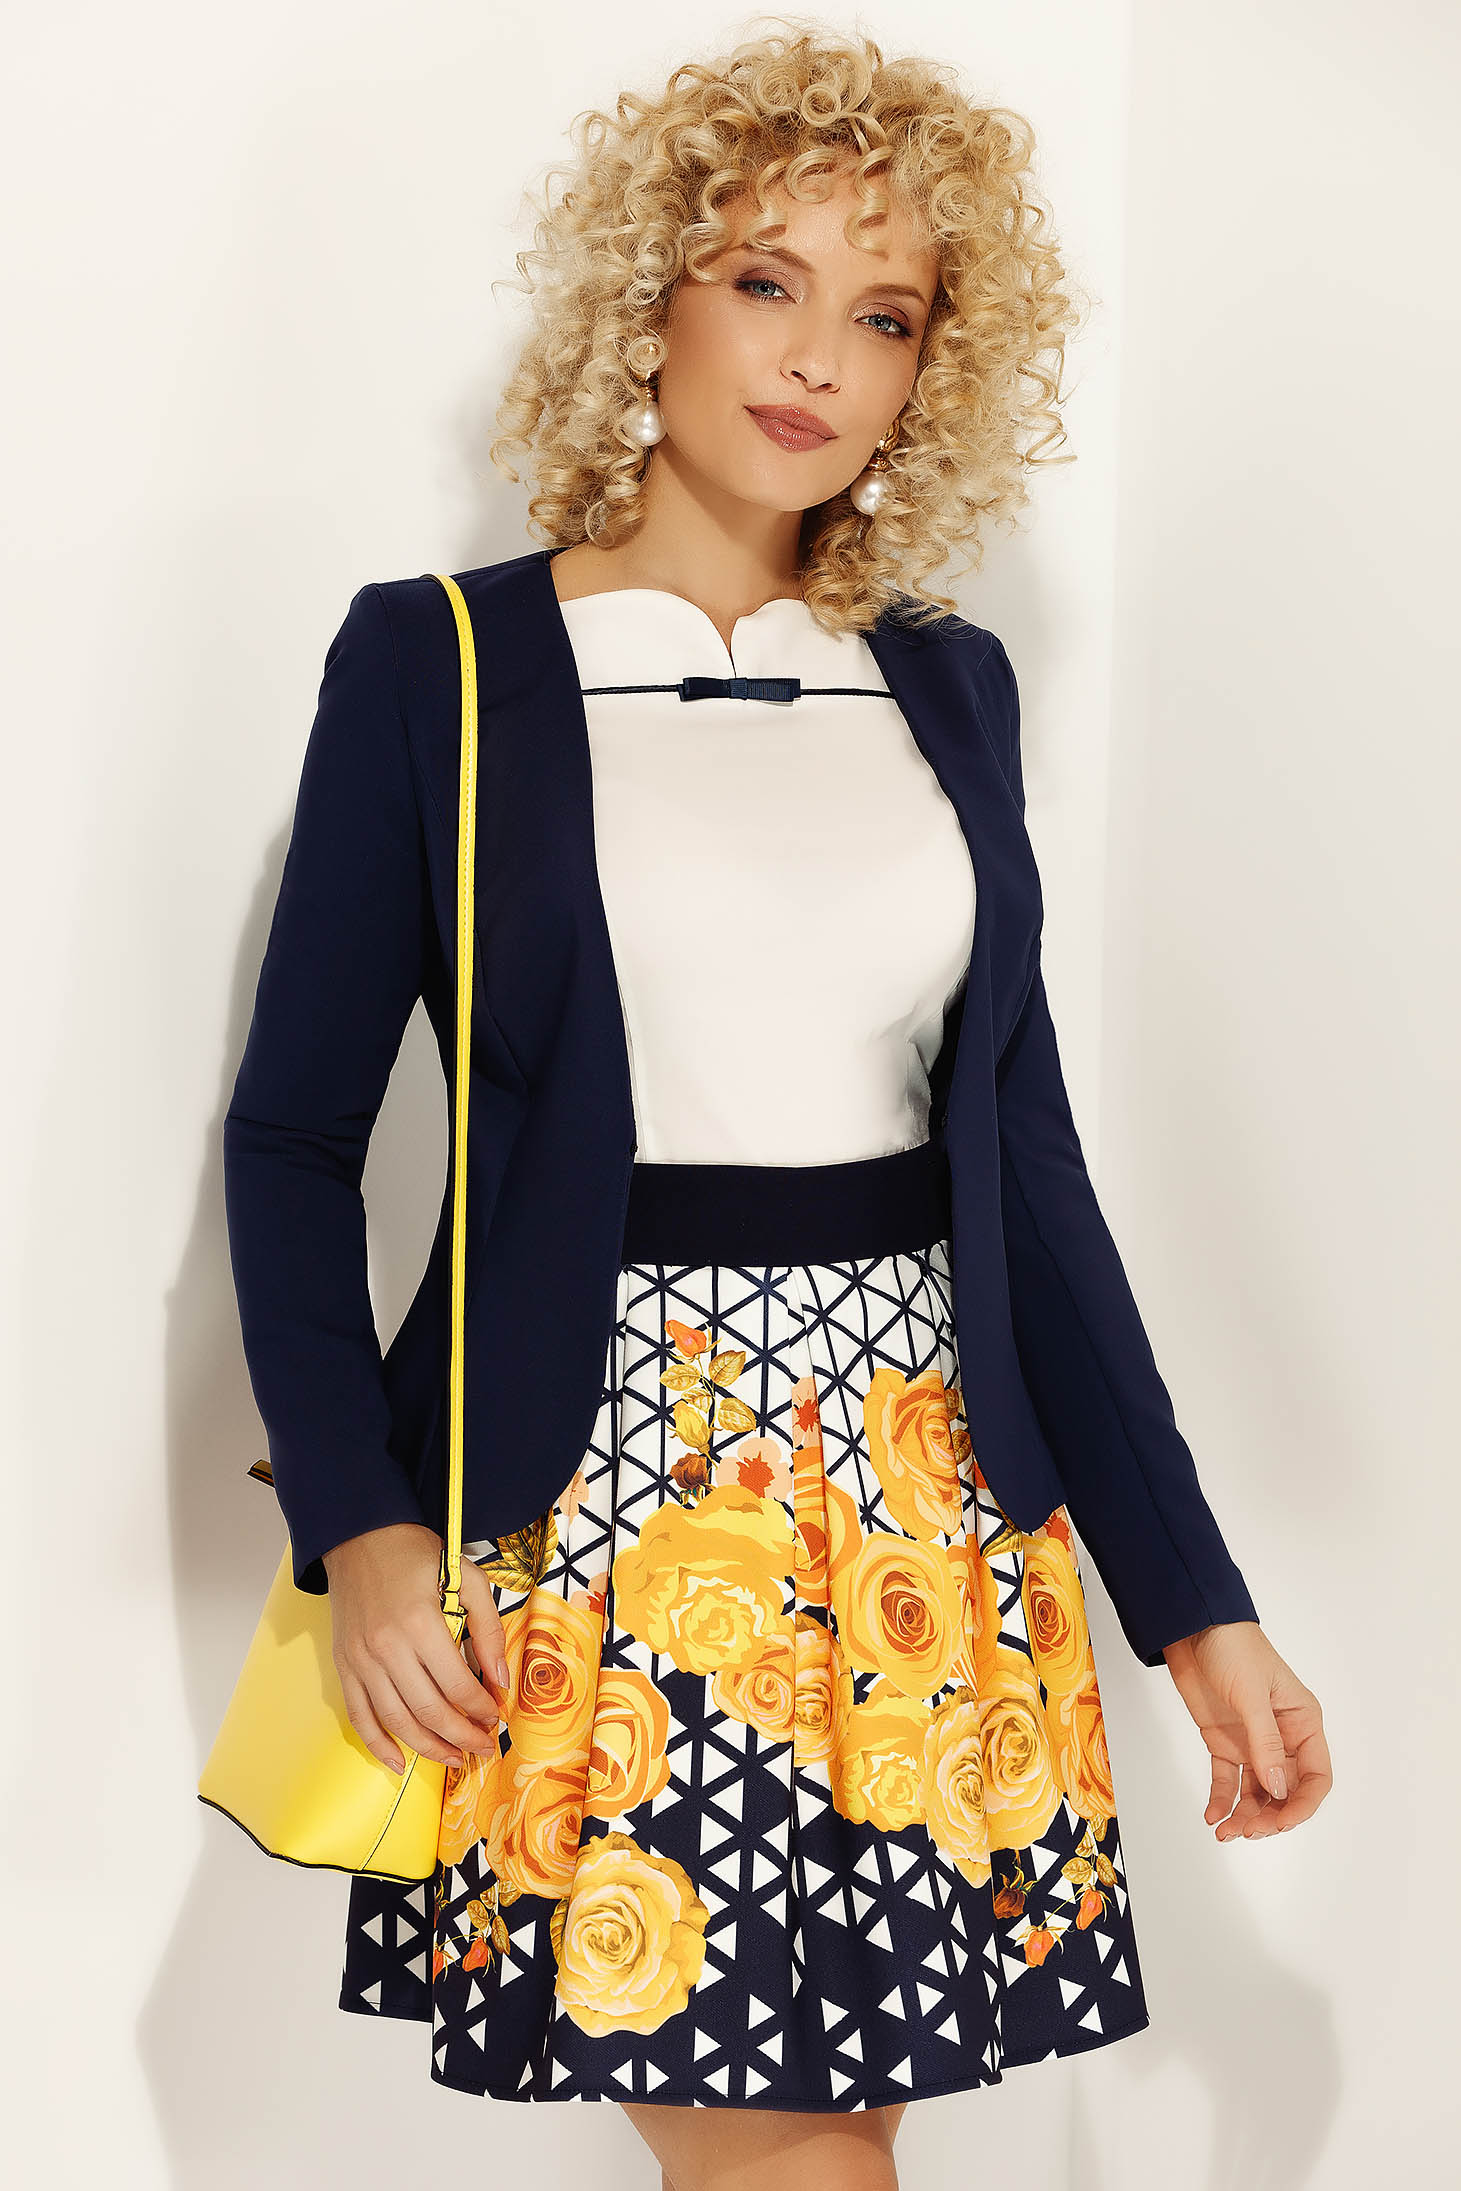 Fofy mustard office cloche skirt from elastic and fine fabric high waisted with floral prints